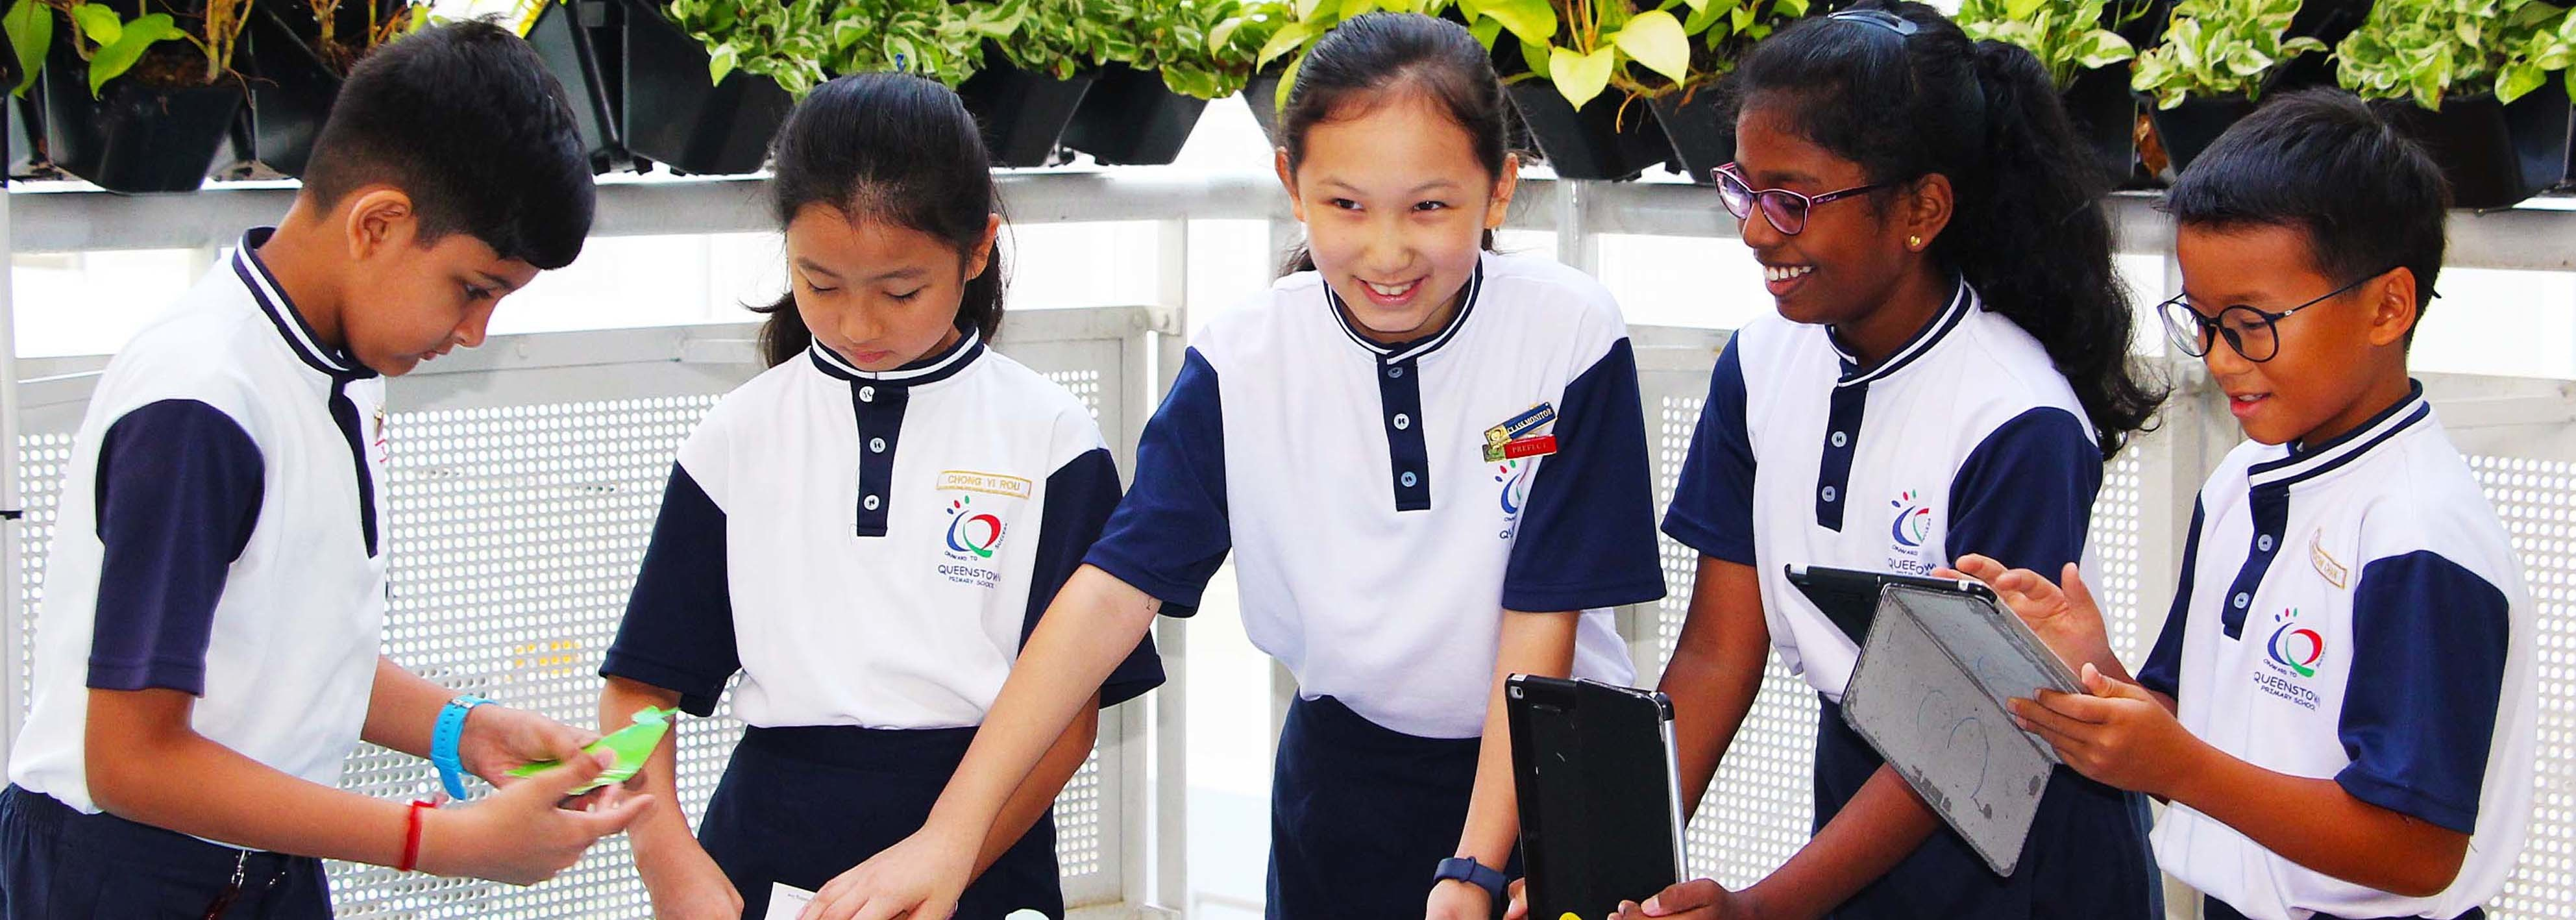 School of the 21st Century, committed to providing<br/>a Holistic Education to all students